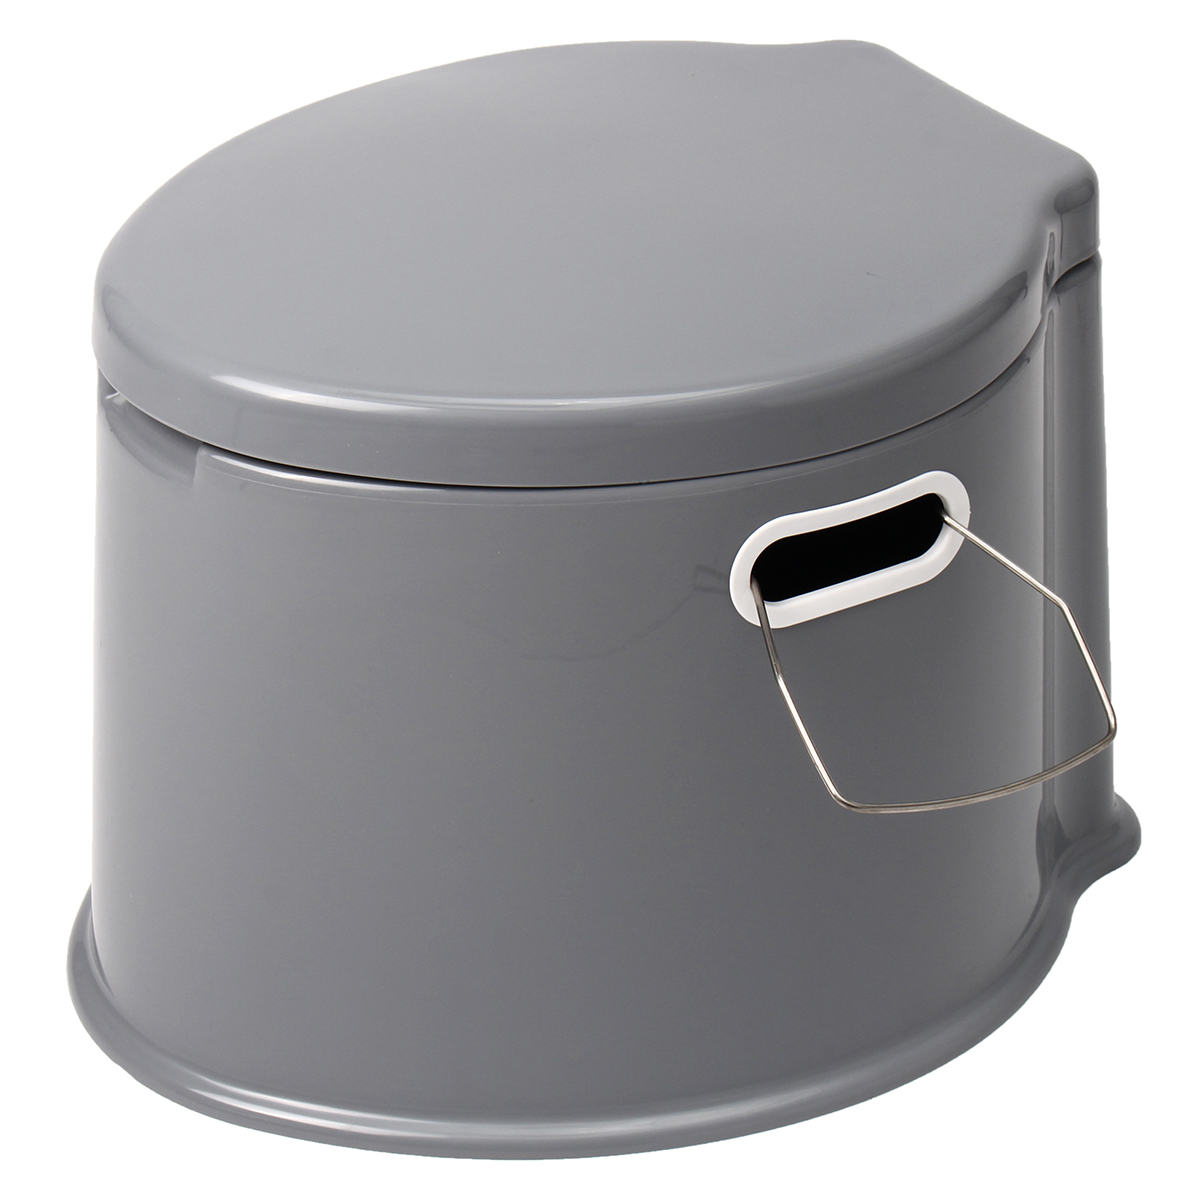 Portable Large Toilet Travel Camping Hiking Outdoor Indoor Potty Commode